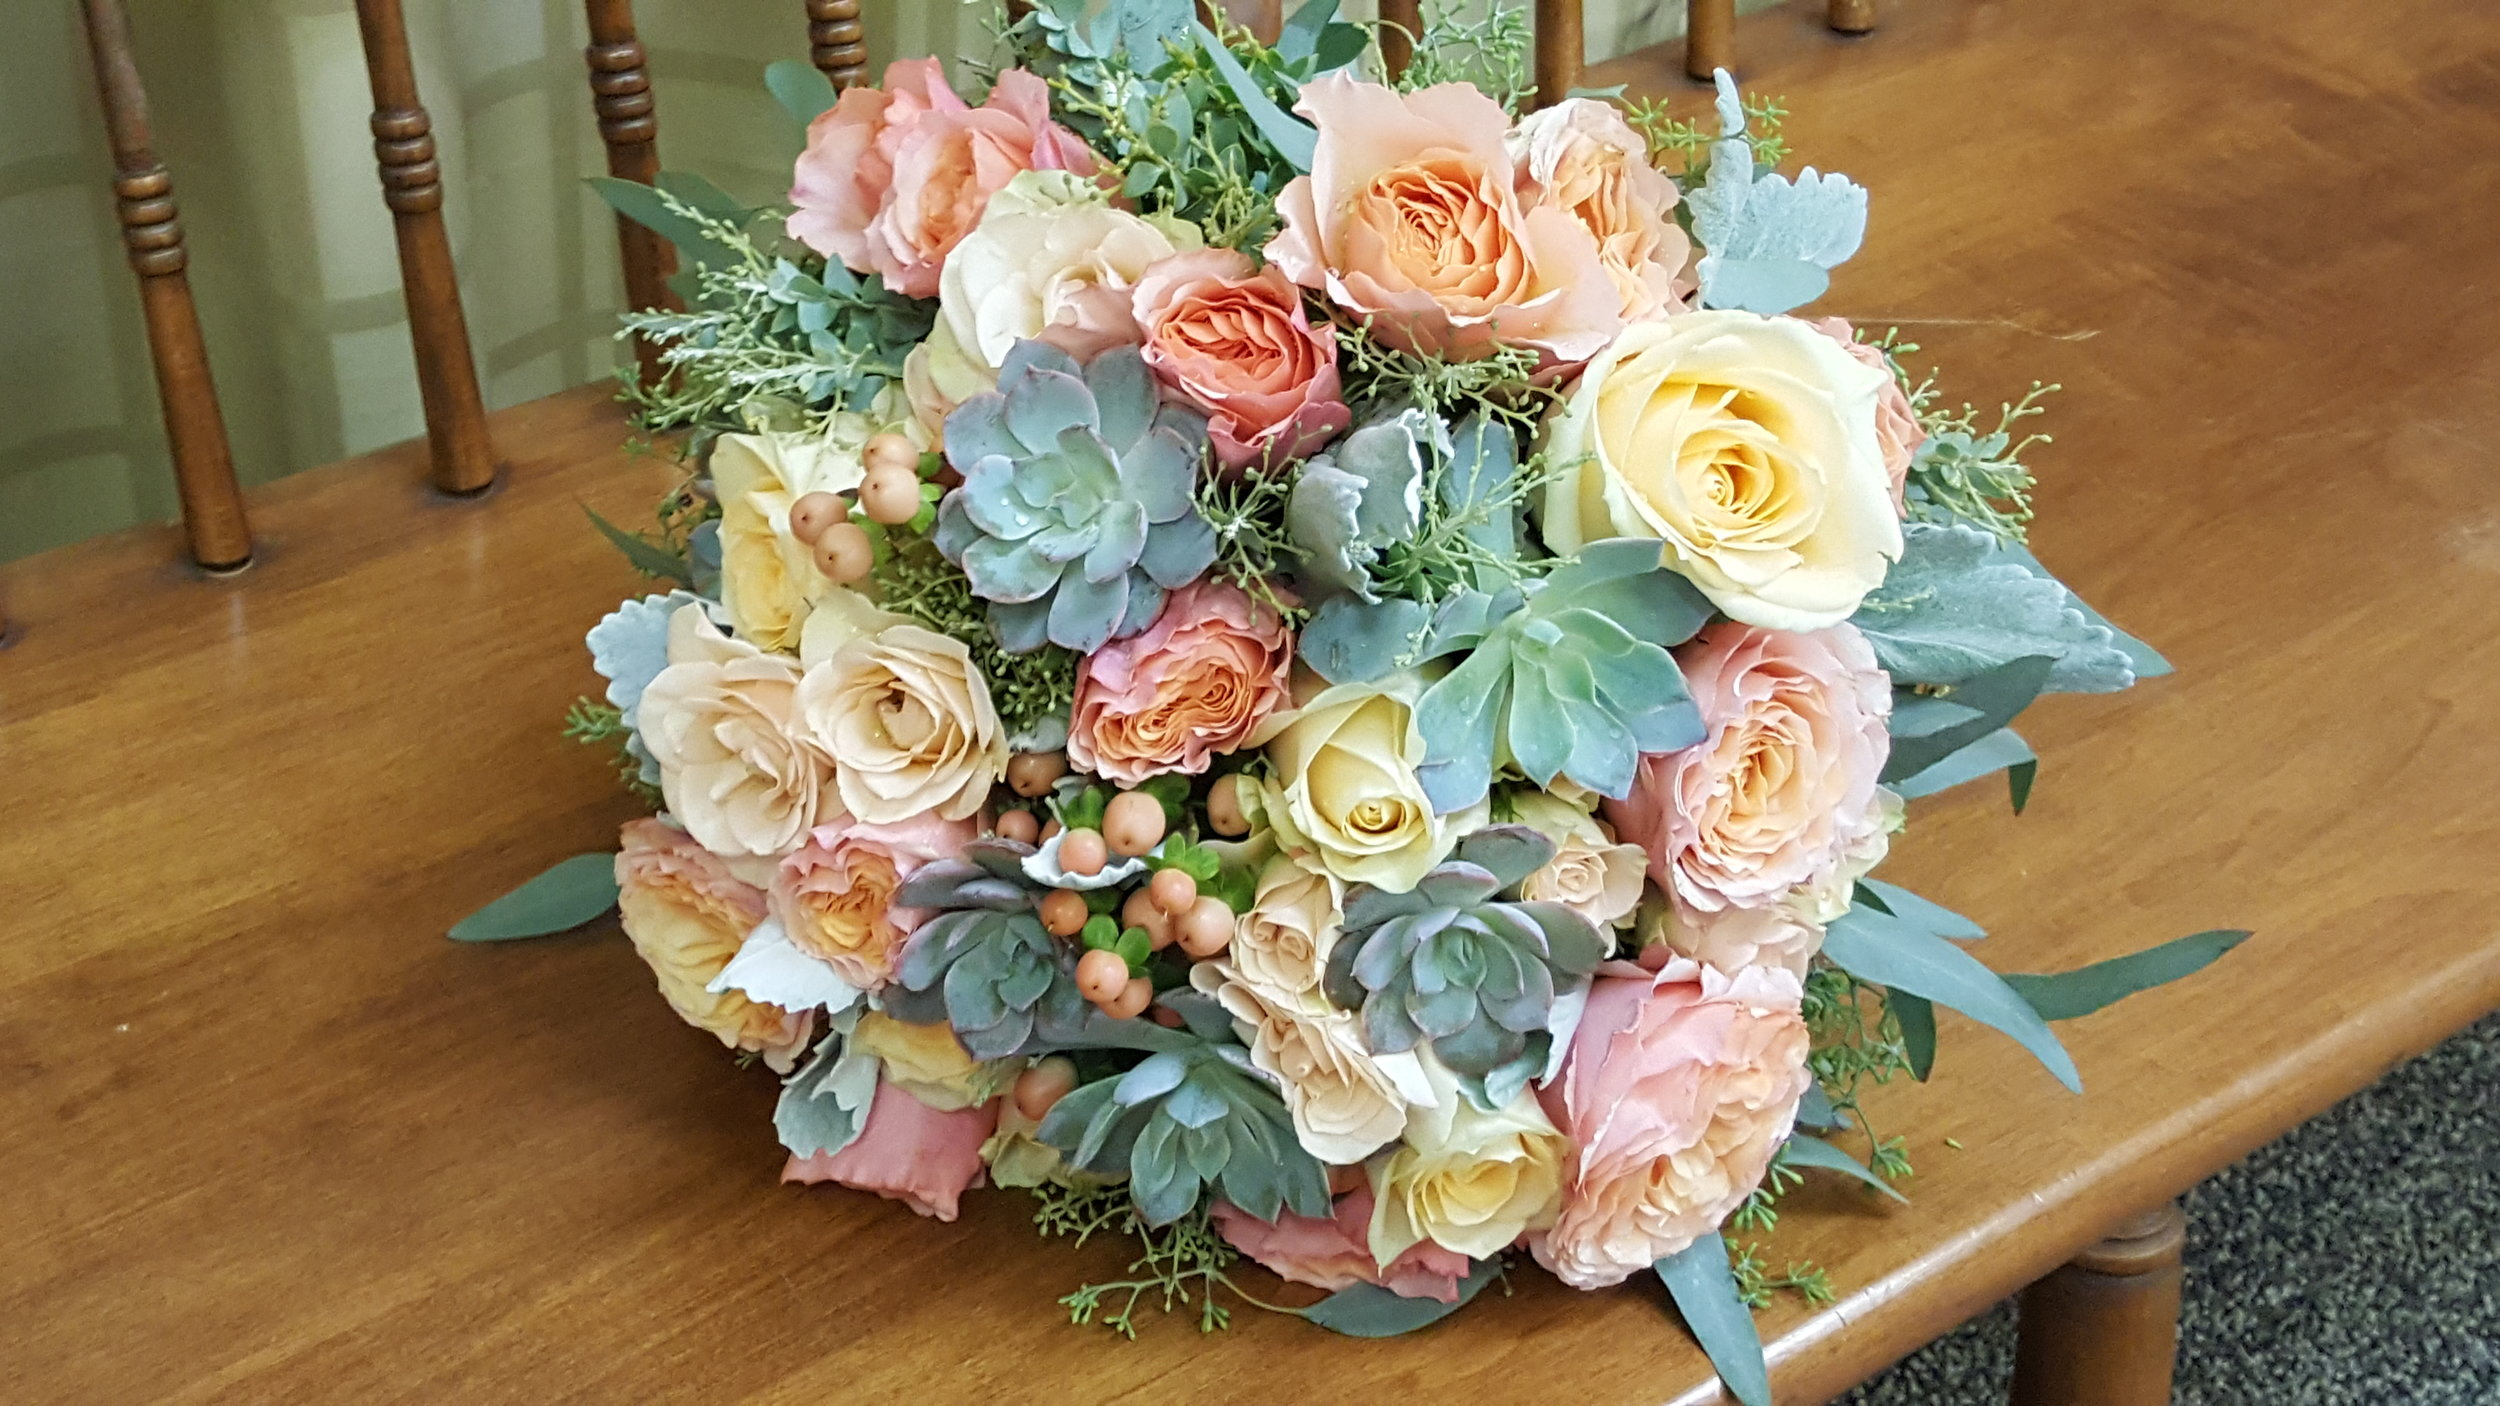 Flowers include roses, ranunculus, succulents and hypericum berries, Apricot, blush and sage green bridal bouquet